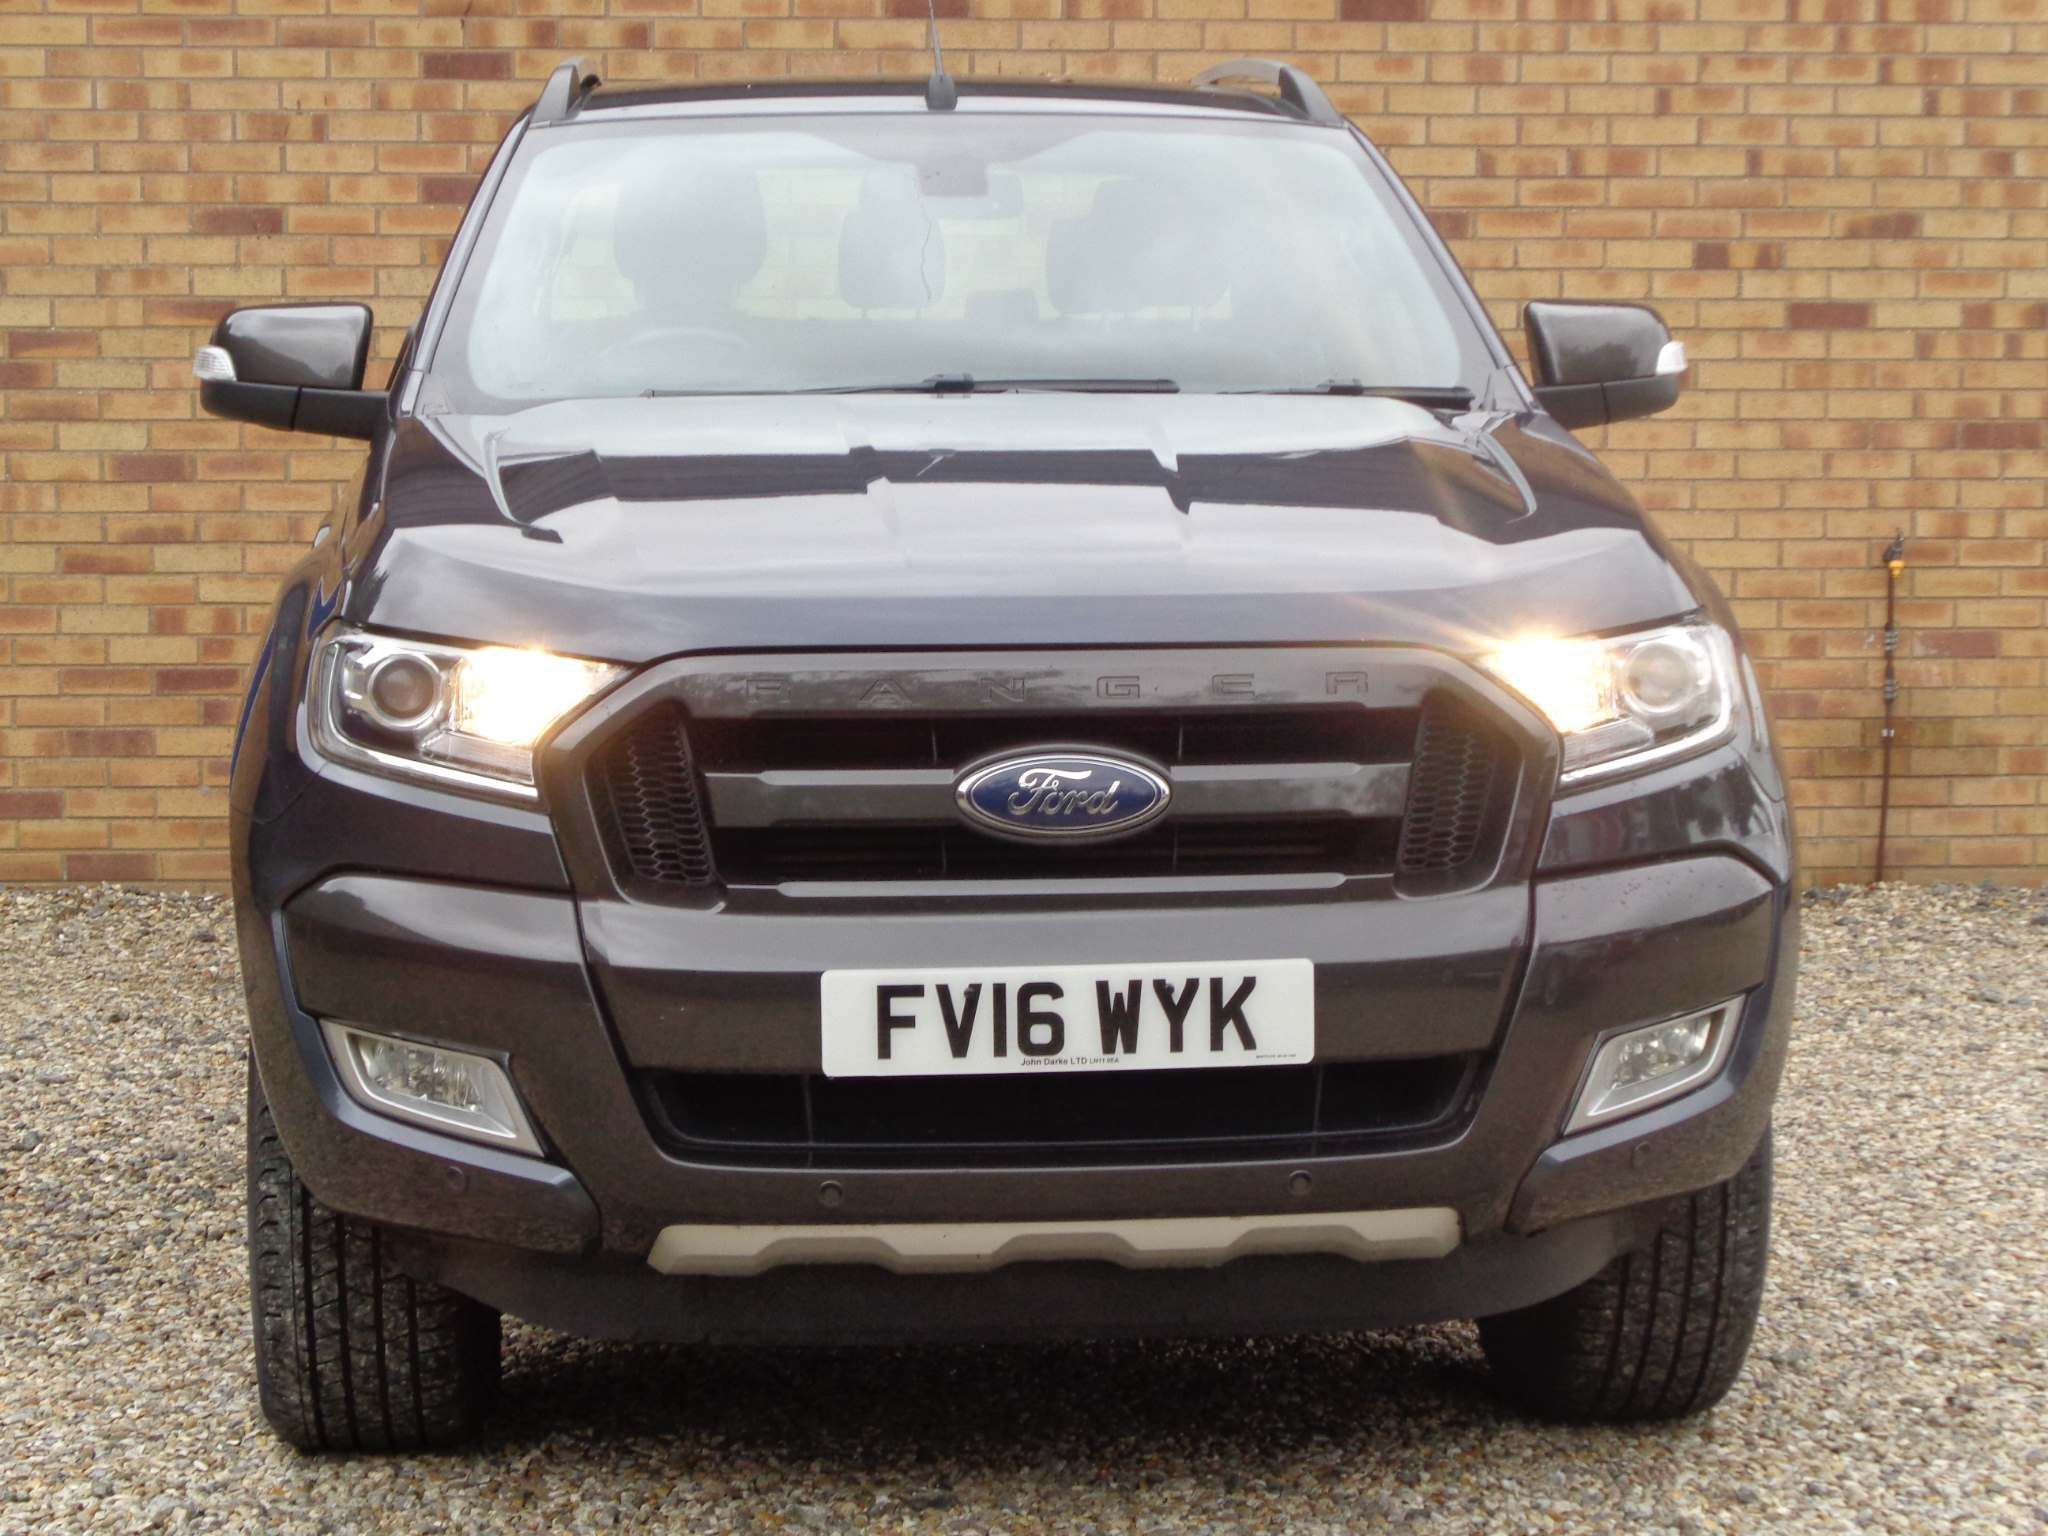 http://pictures2.autotrader.co.uk/imgser-uk/servlet/media?id=9c1c53724a1f4218aab9017e69f7d4a9